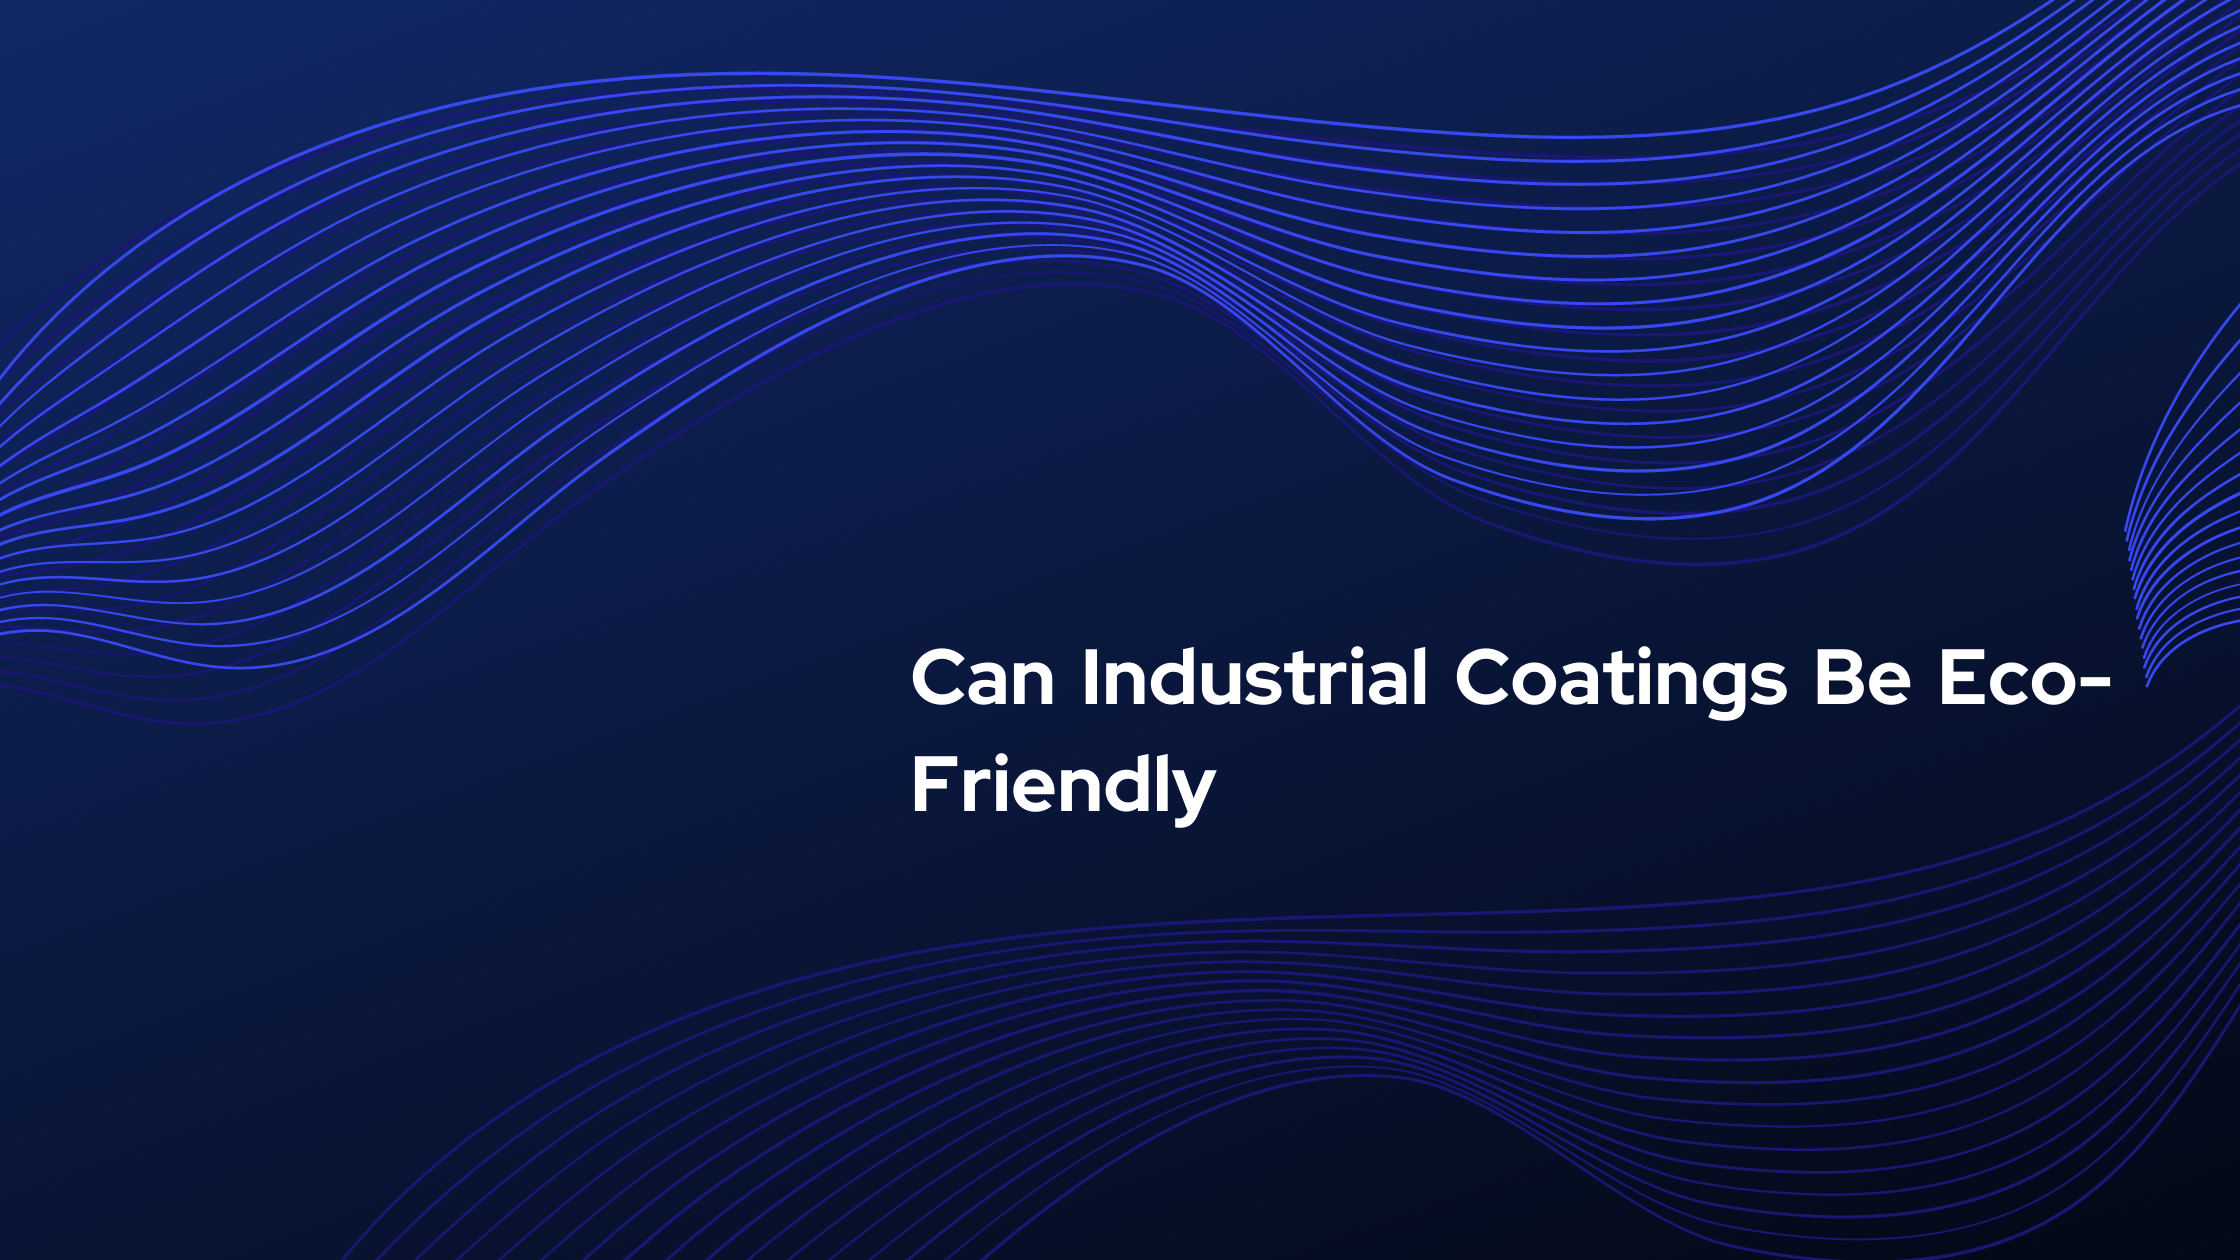 Can Industrial Coatings Be Eco-Friendly